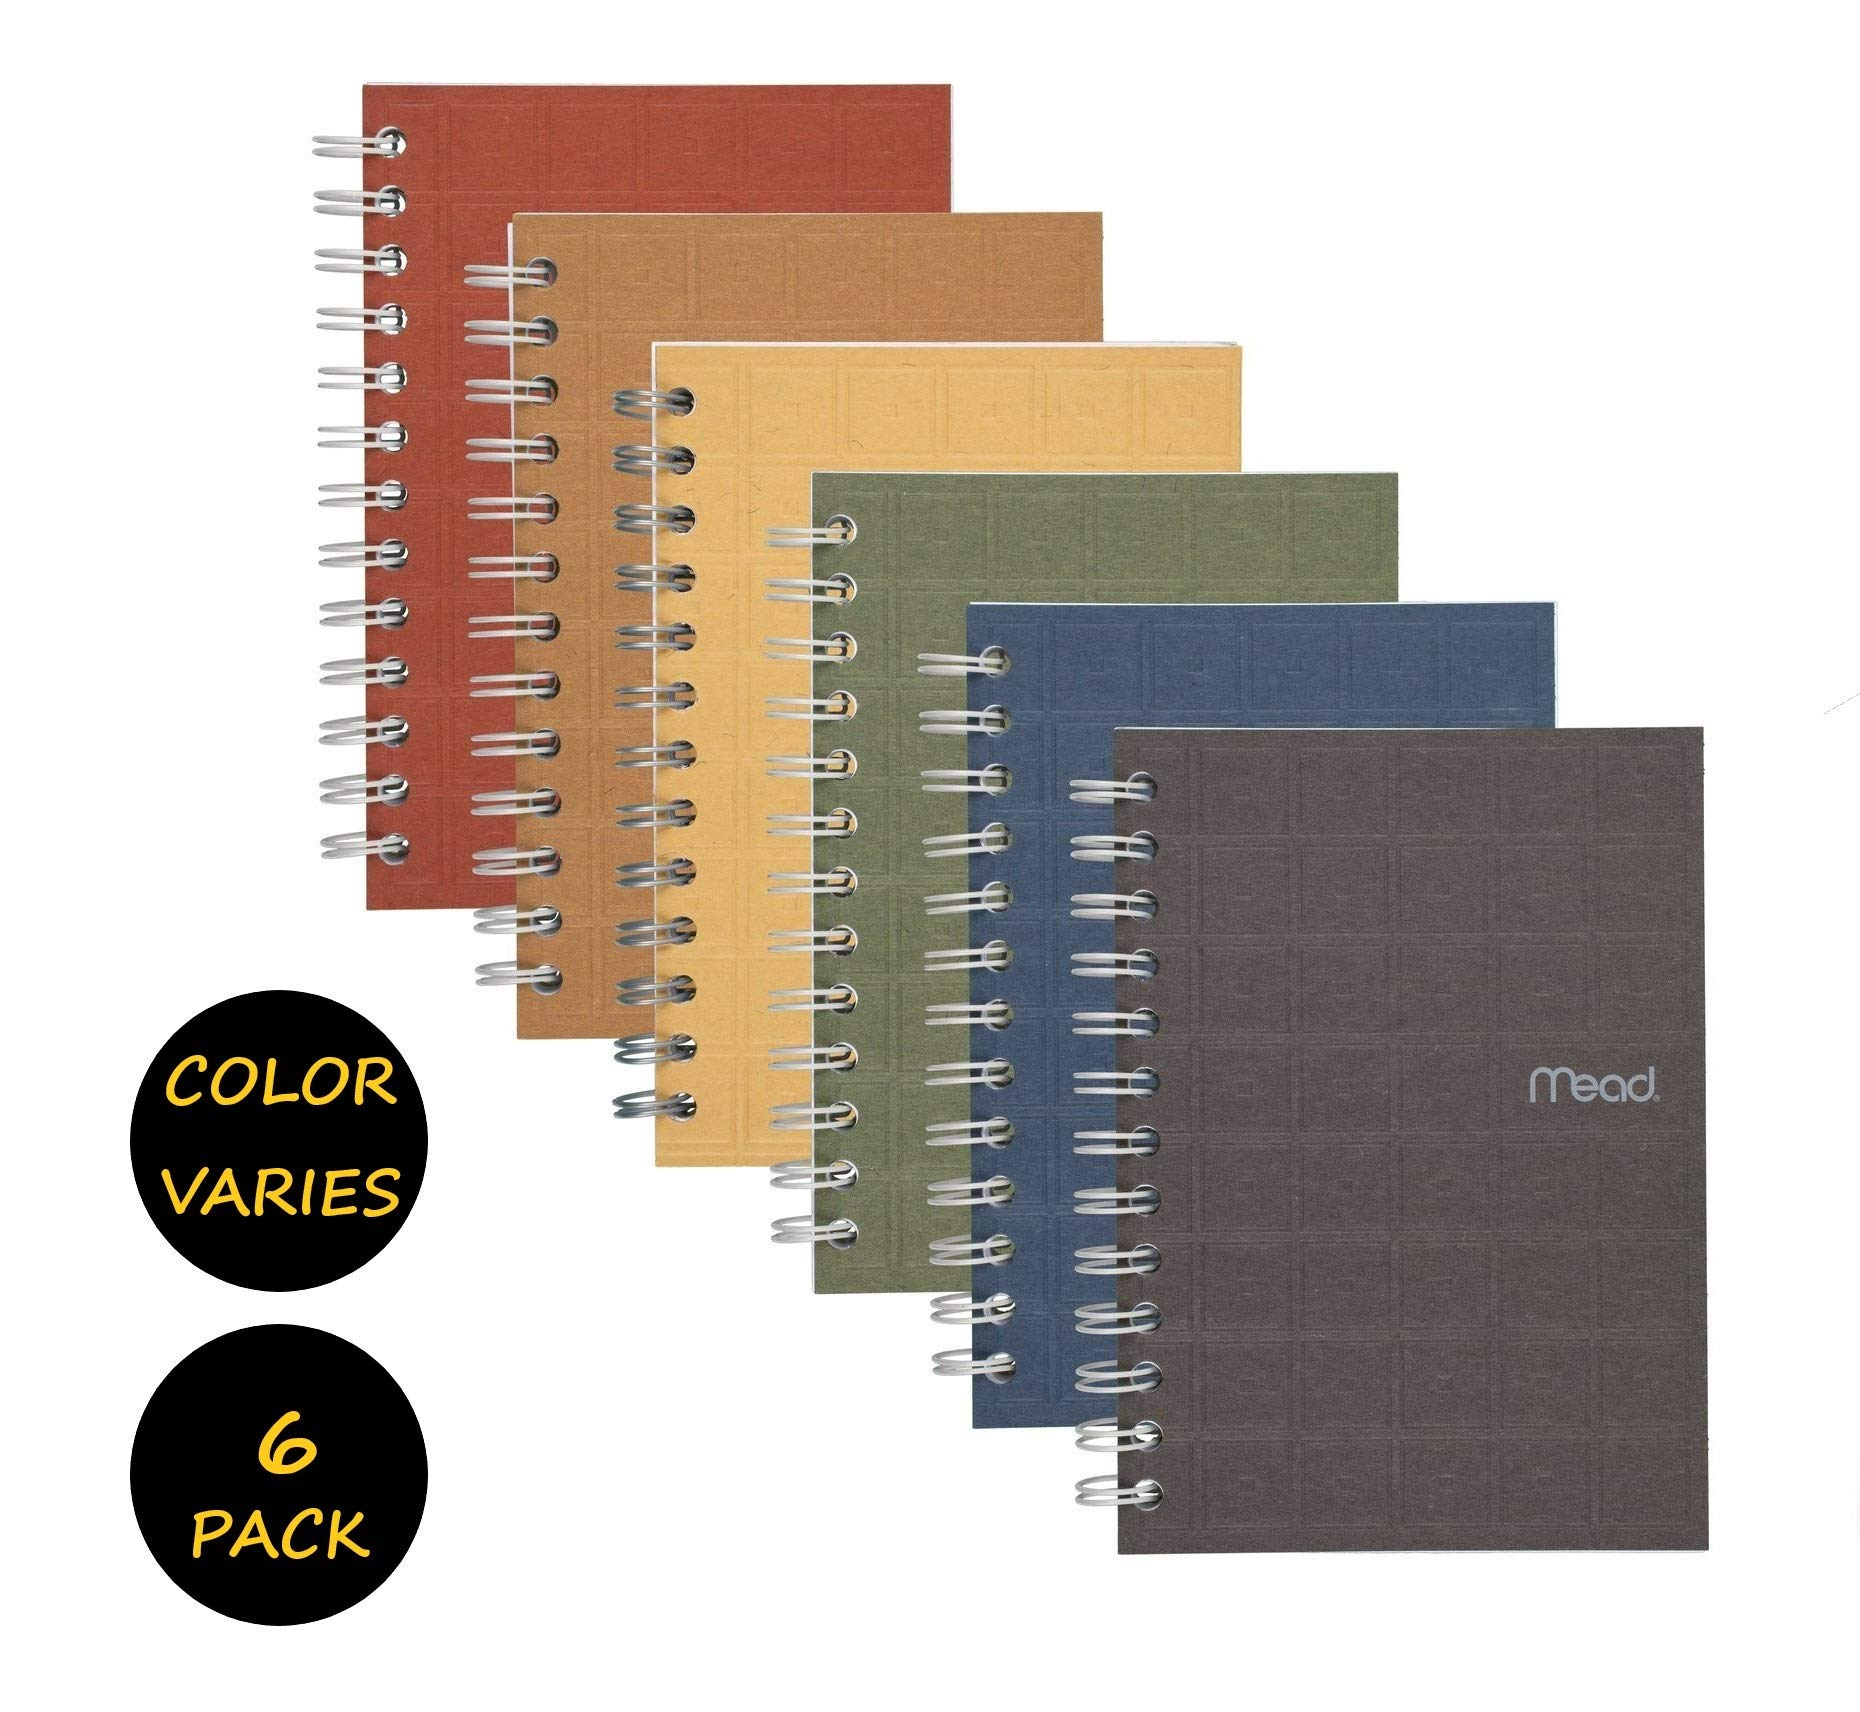 """Mead Spiral Notebook, College Ruled Paper, 80 Sheets, 7"""" x 5"""", Recycled, Assorted Colors, 6 Pack (45186)"""